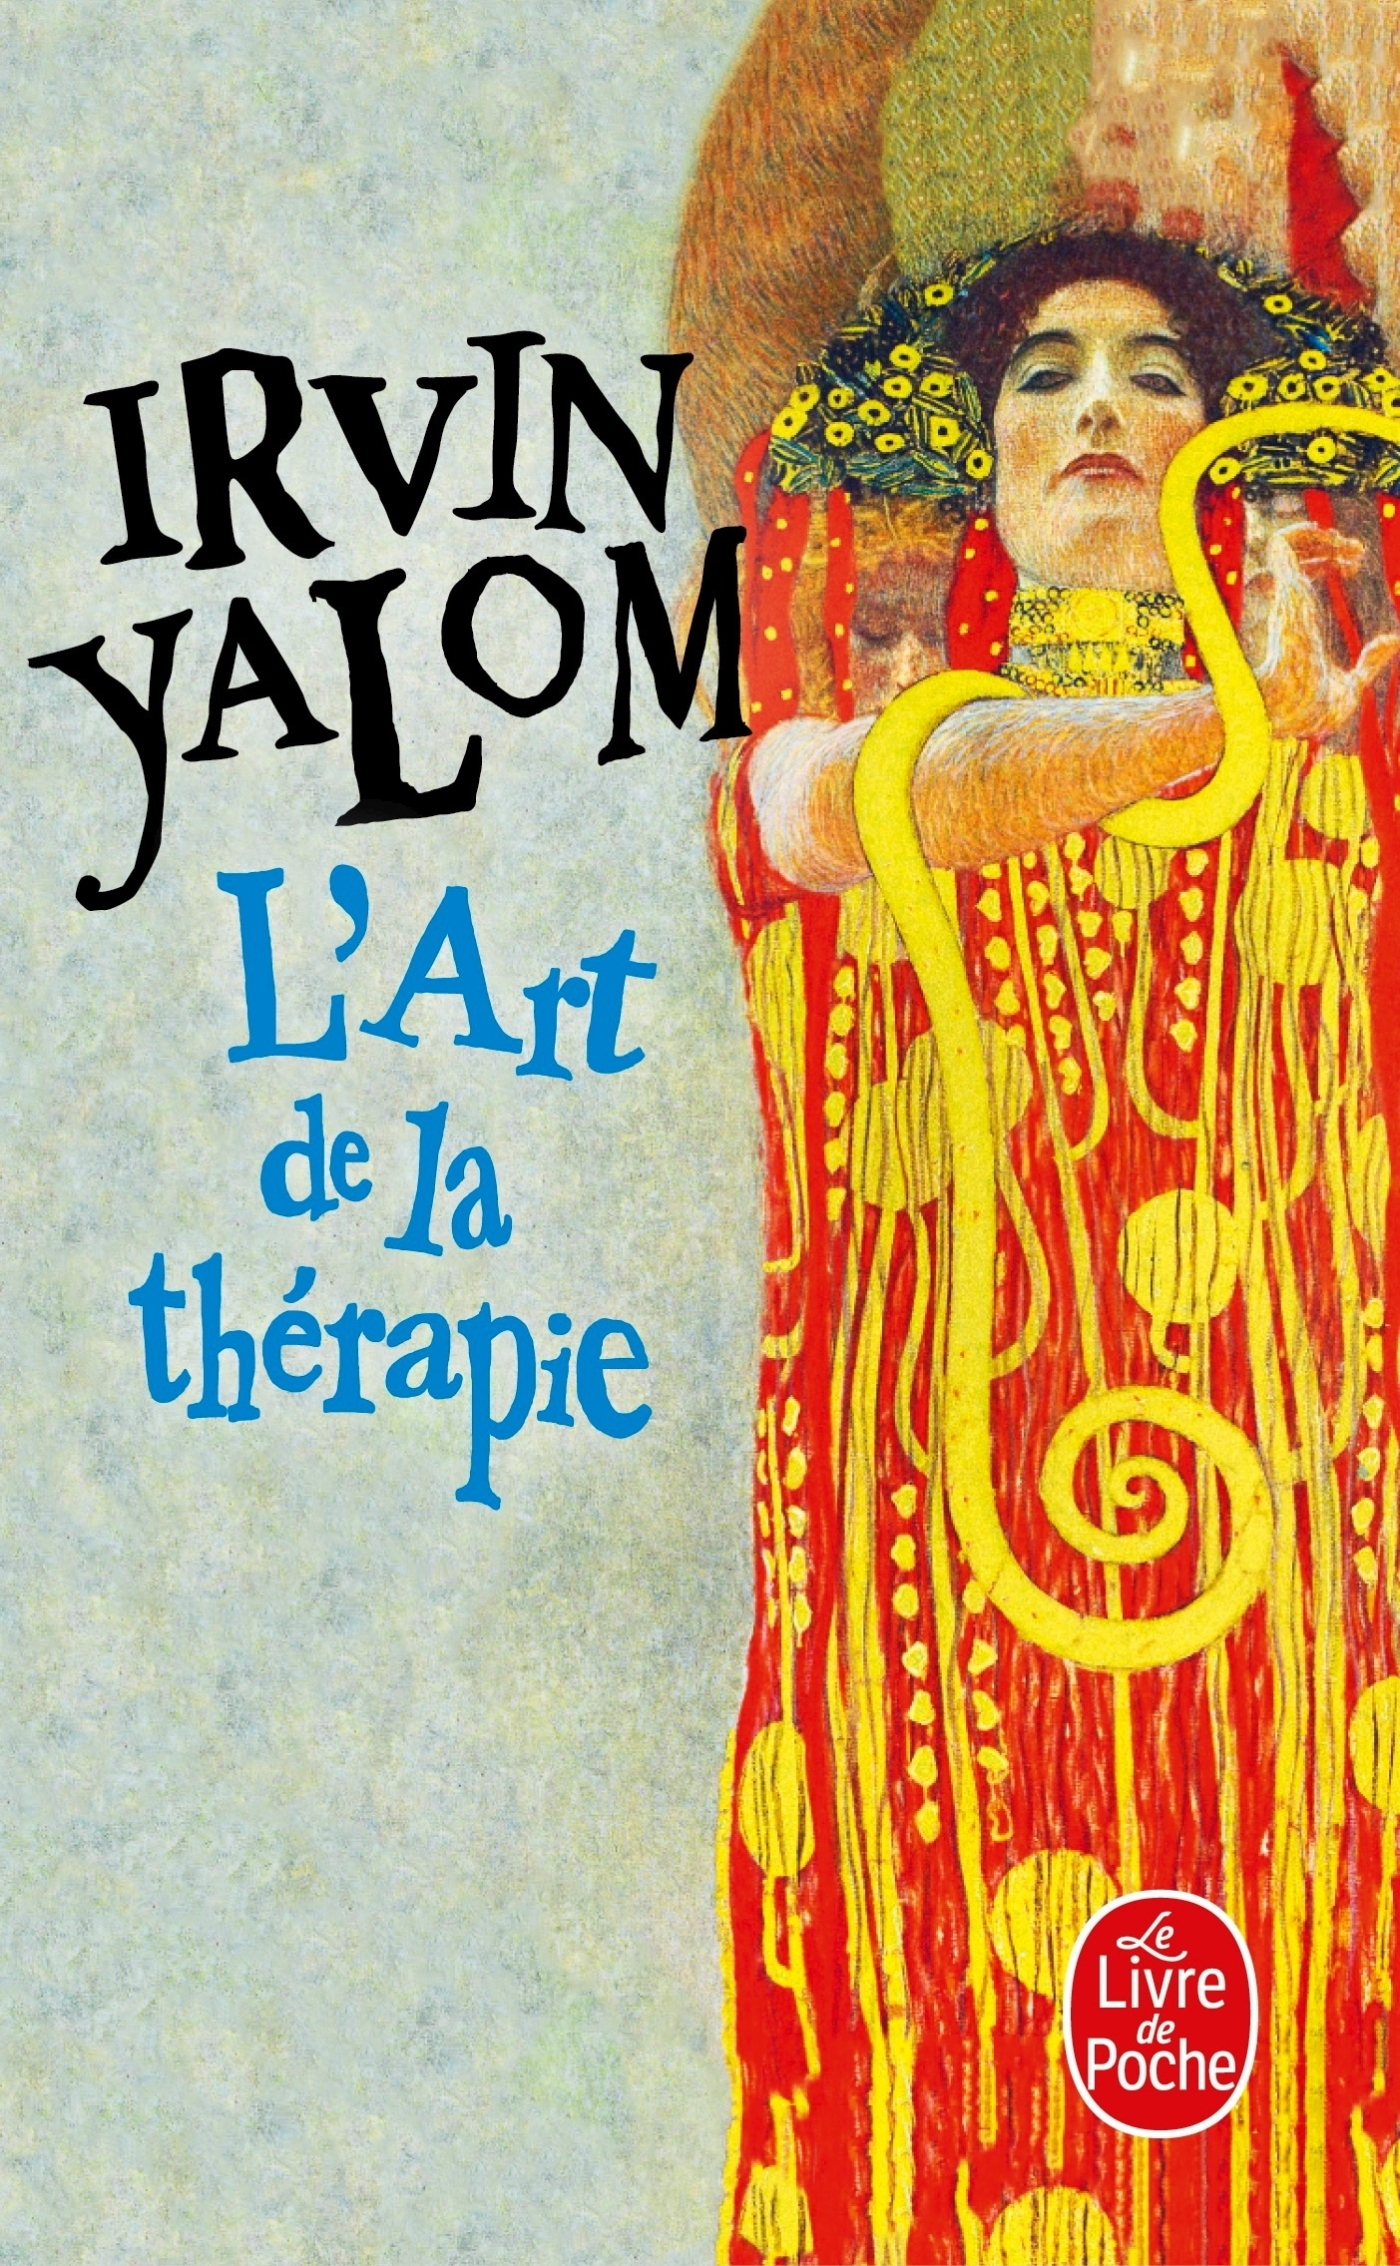 L'ART DE LA THERAPIE